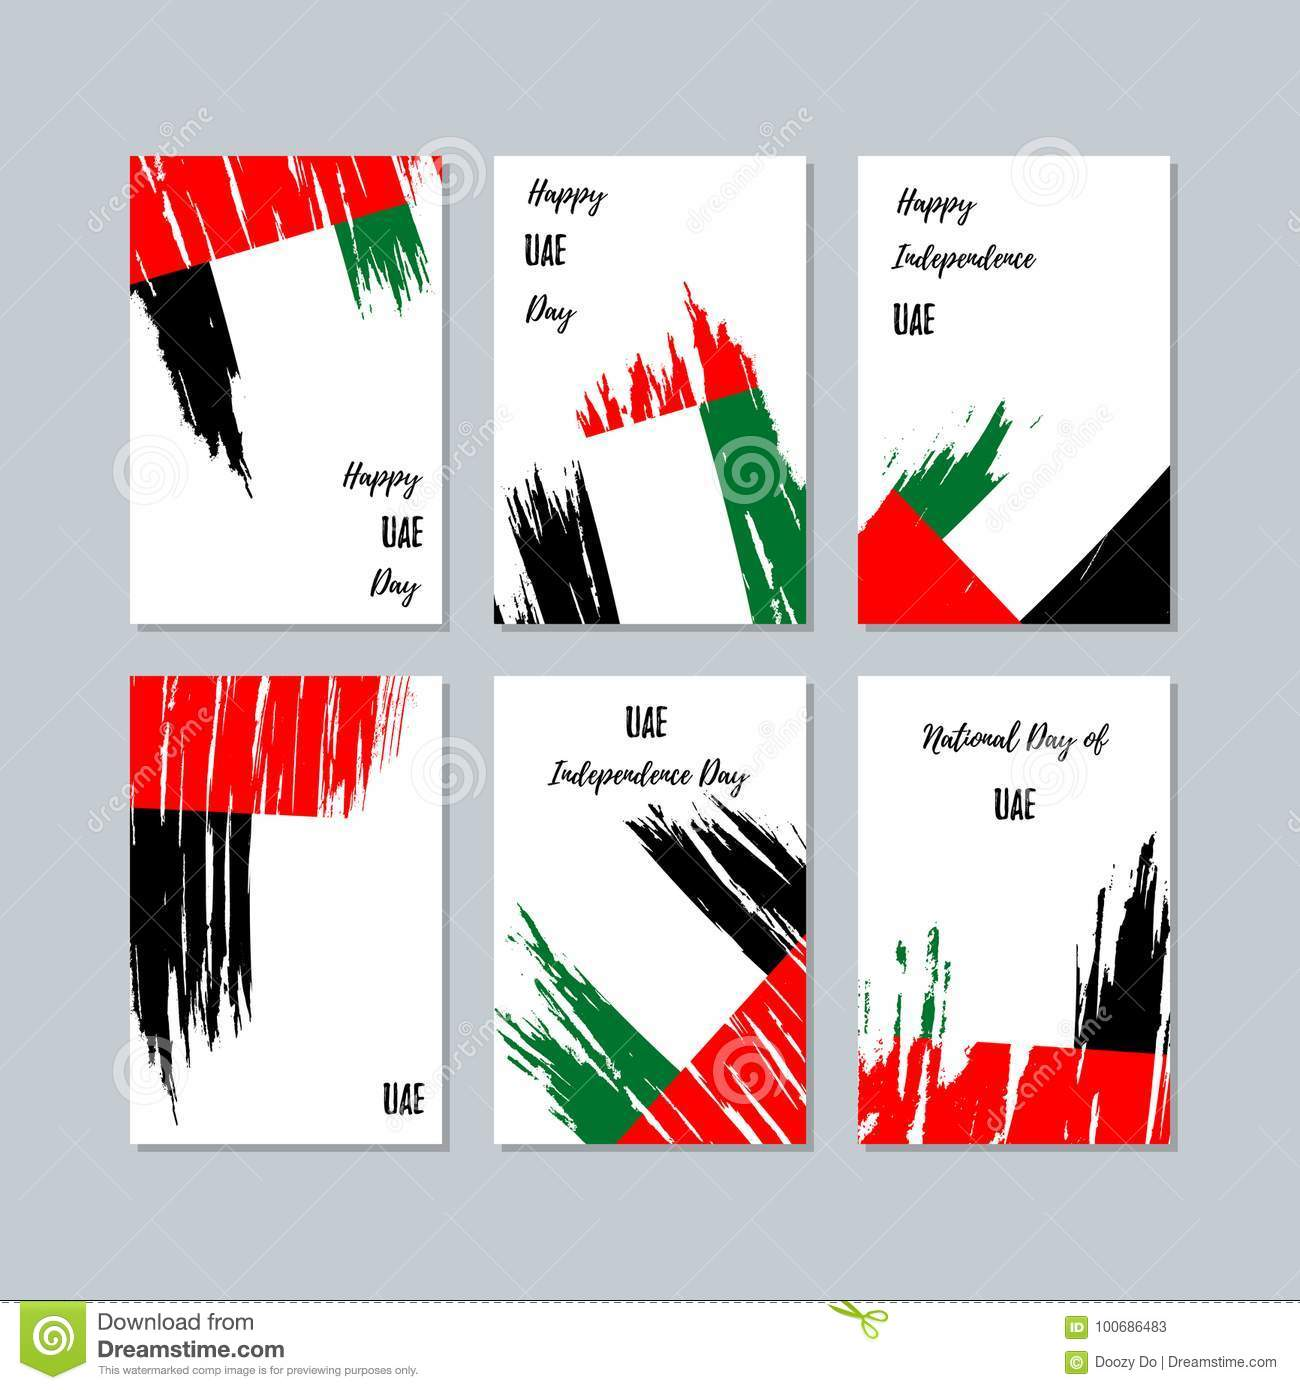 Uae Patriotic Cards For National Day Stock Vector Illustration Of